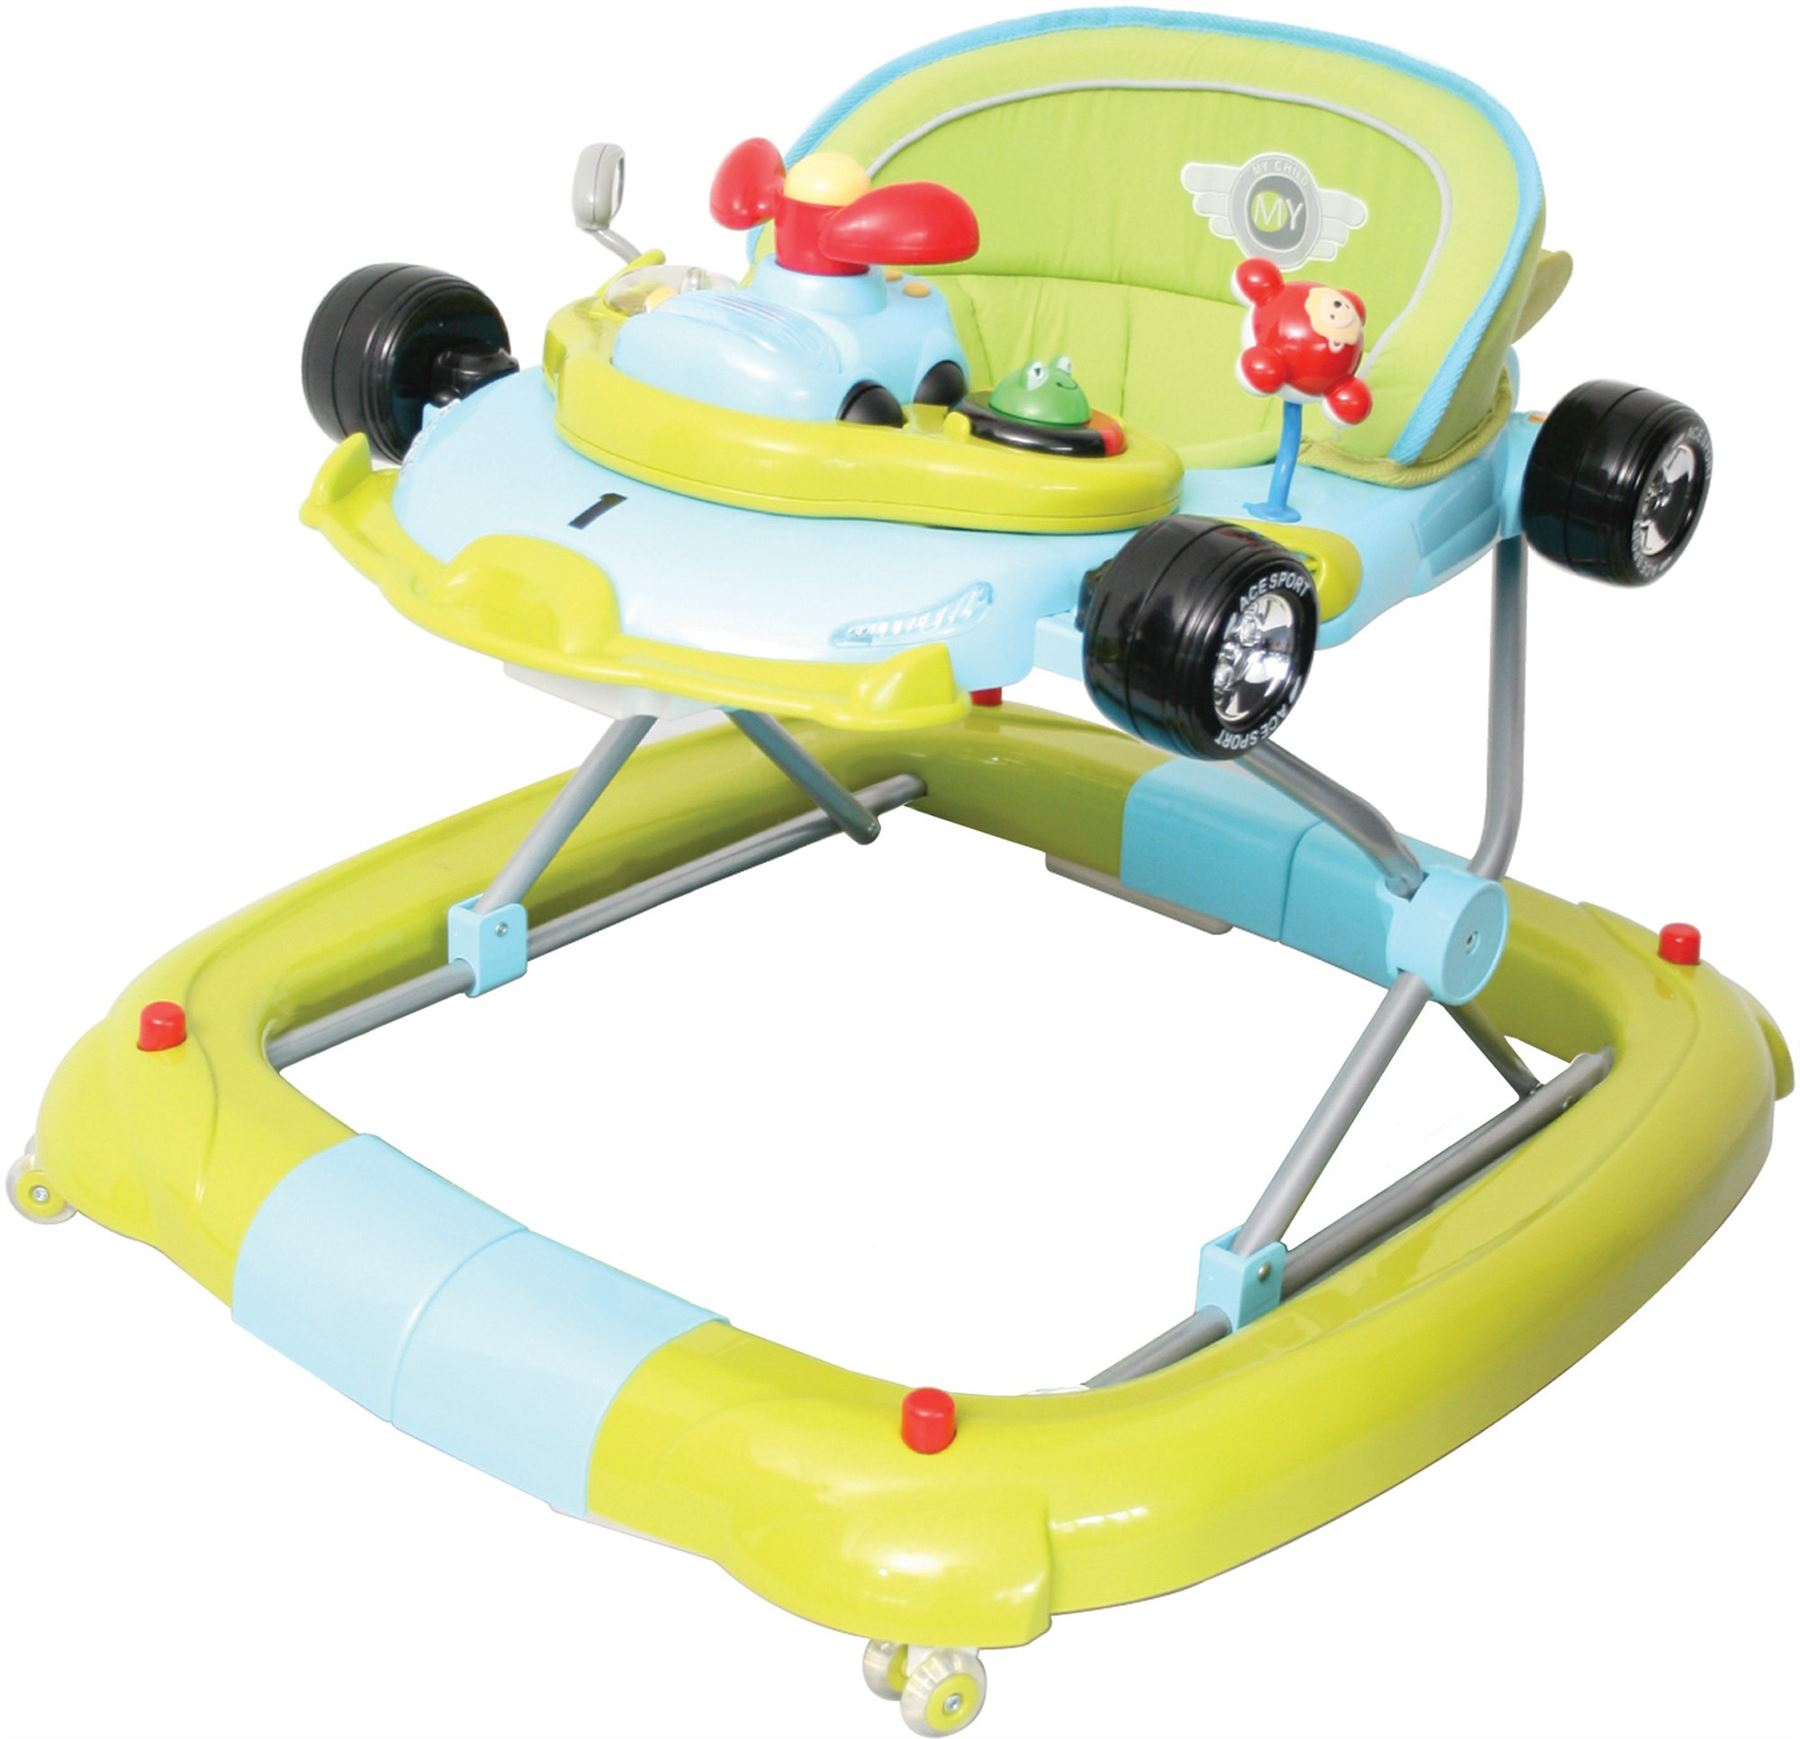 MyChild F1 CAR WALKER RACING GO GO GREEN Musical Baby Activity Toy